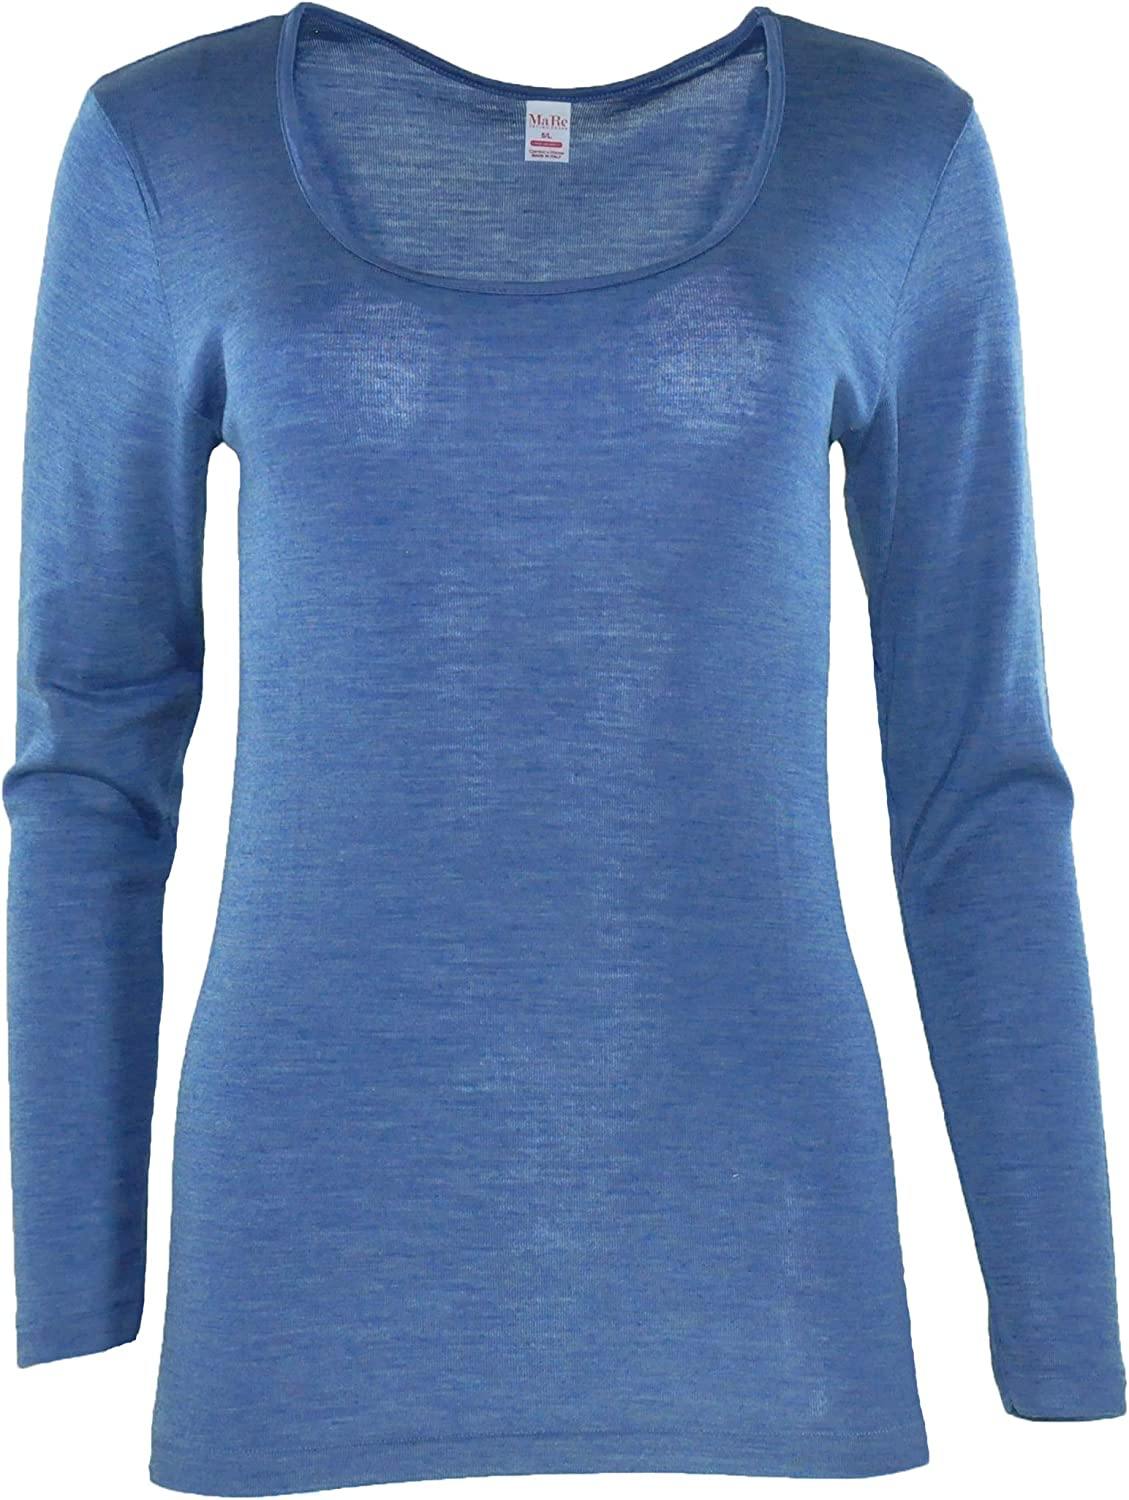 MaRe A surprise price is realized Luxury Merino Wool Blend Ranking TOP9 Proudly Long Made Sleeve T-Shirt.